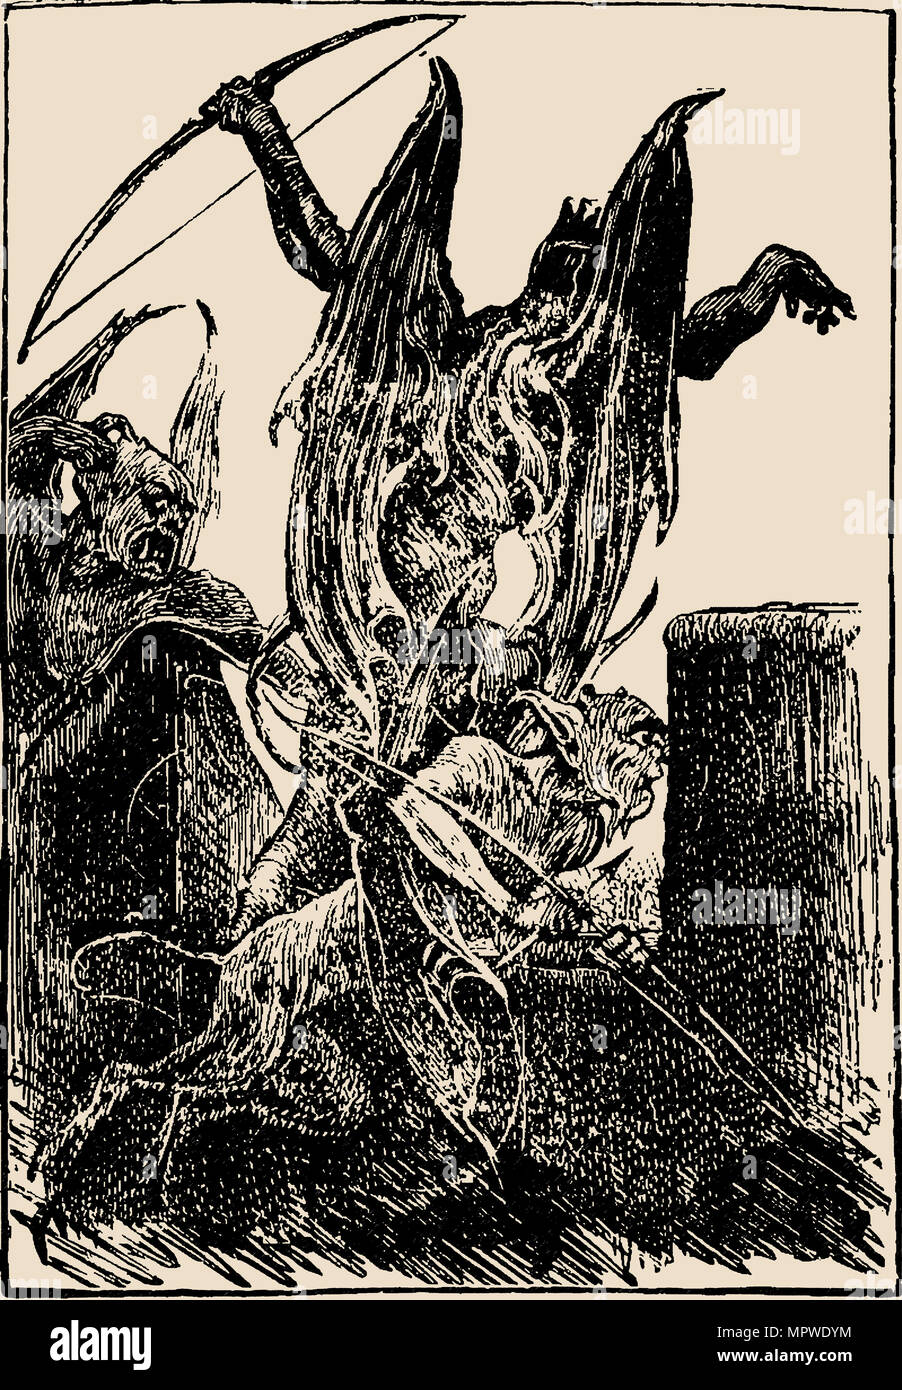 Beelzebub. Illustration from The Pilgrim's Progress from This World, to That Which Is to Come by Joh - Stock Image